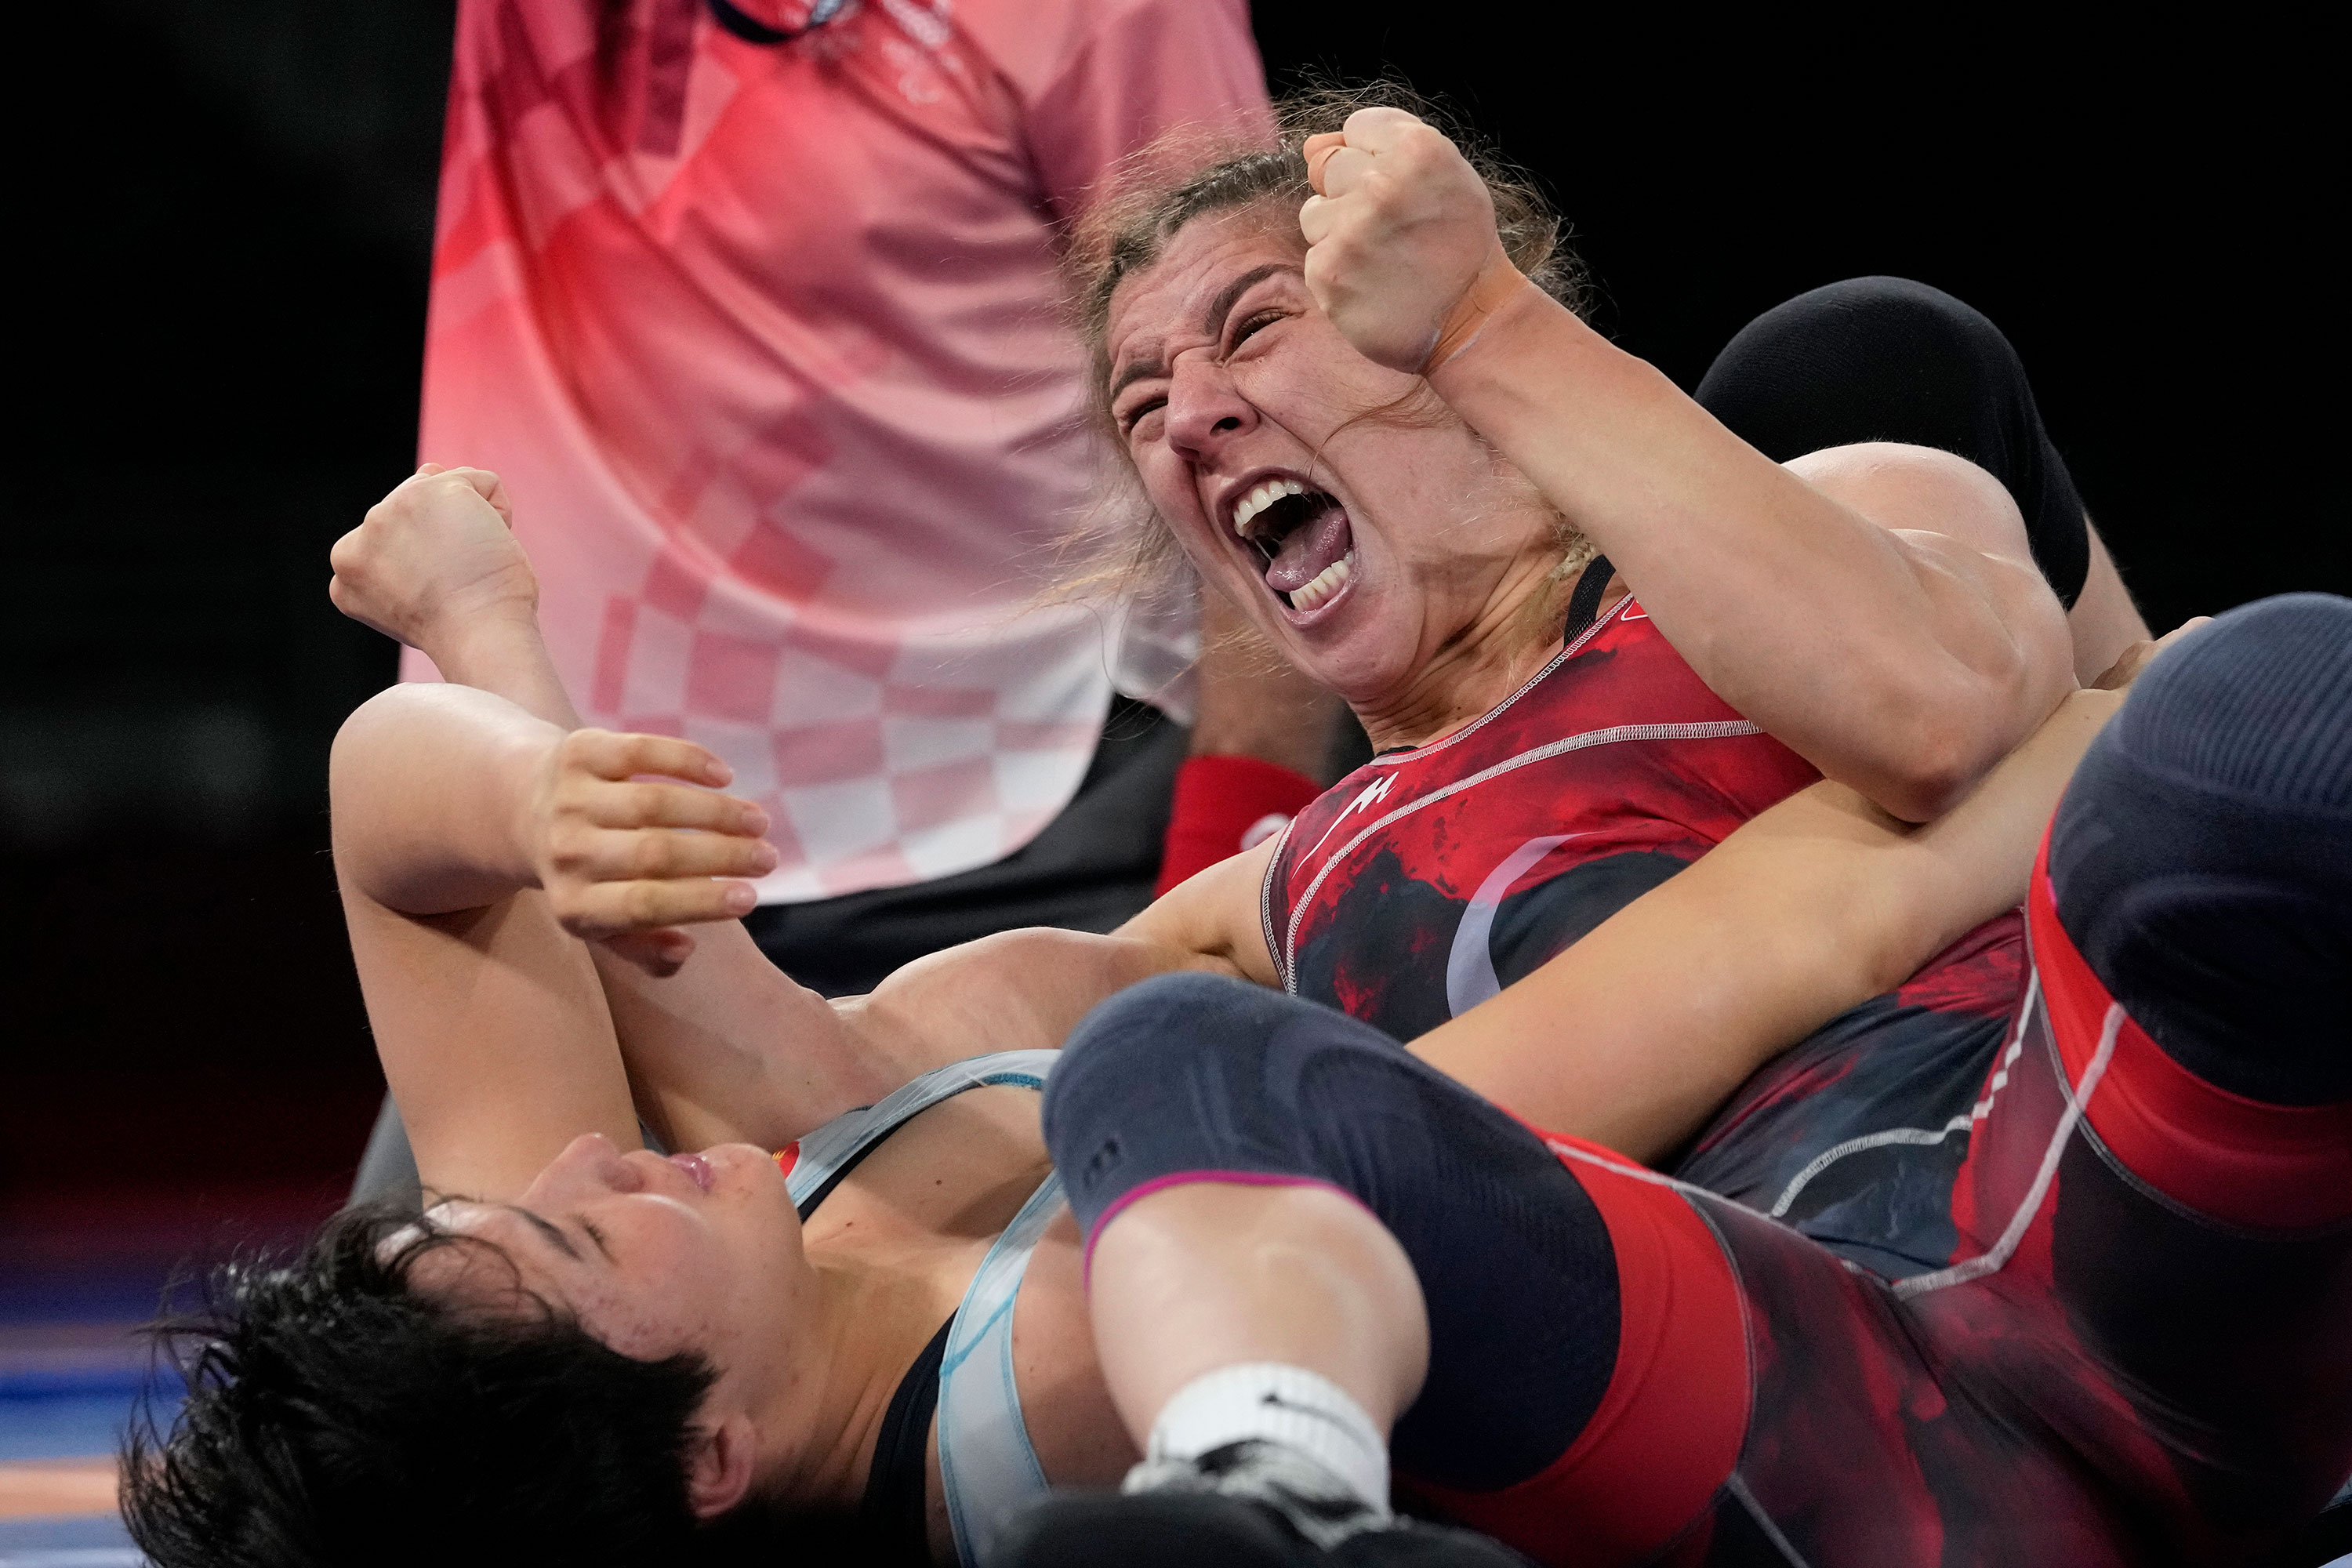 Turkey's Yasemin Adar celebrates after defeating Kyrgyzstan's Aiperi Medet Kyzy for the bronze in the 76kg freestyle wrestling match on August 2.